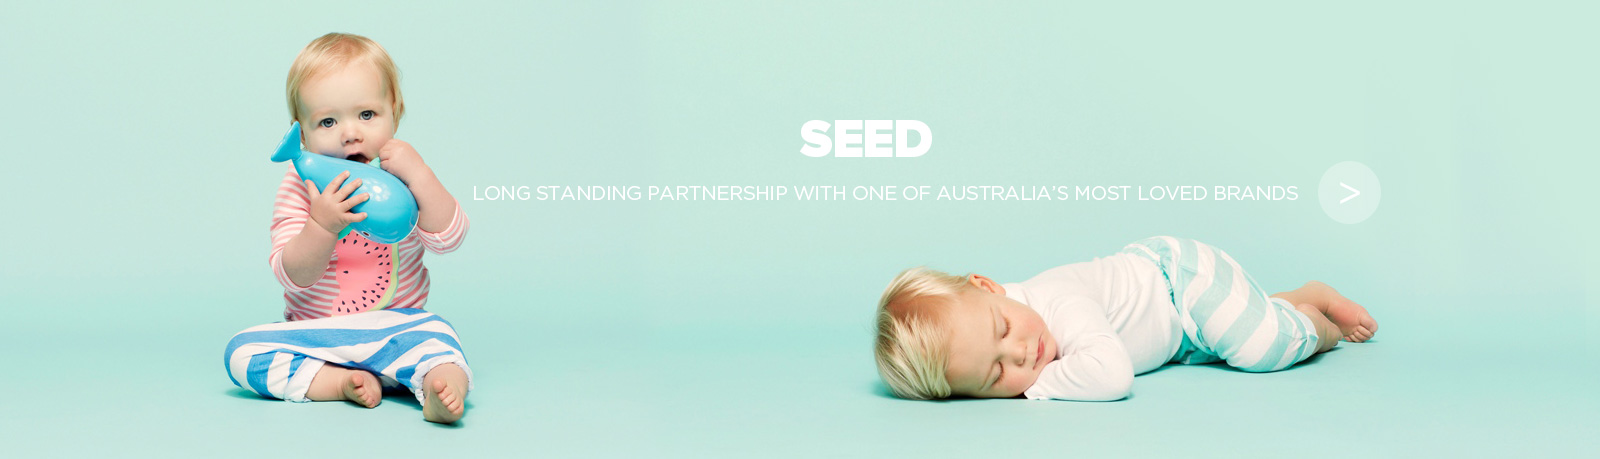 Seed Heritage e-commerce website and mobile site built by NOW Solutions Digital Agency